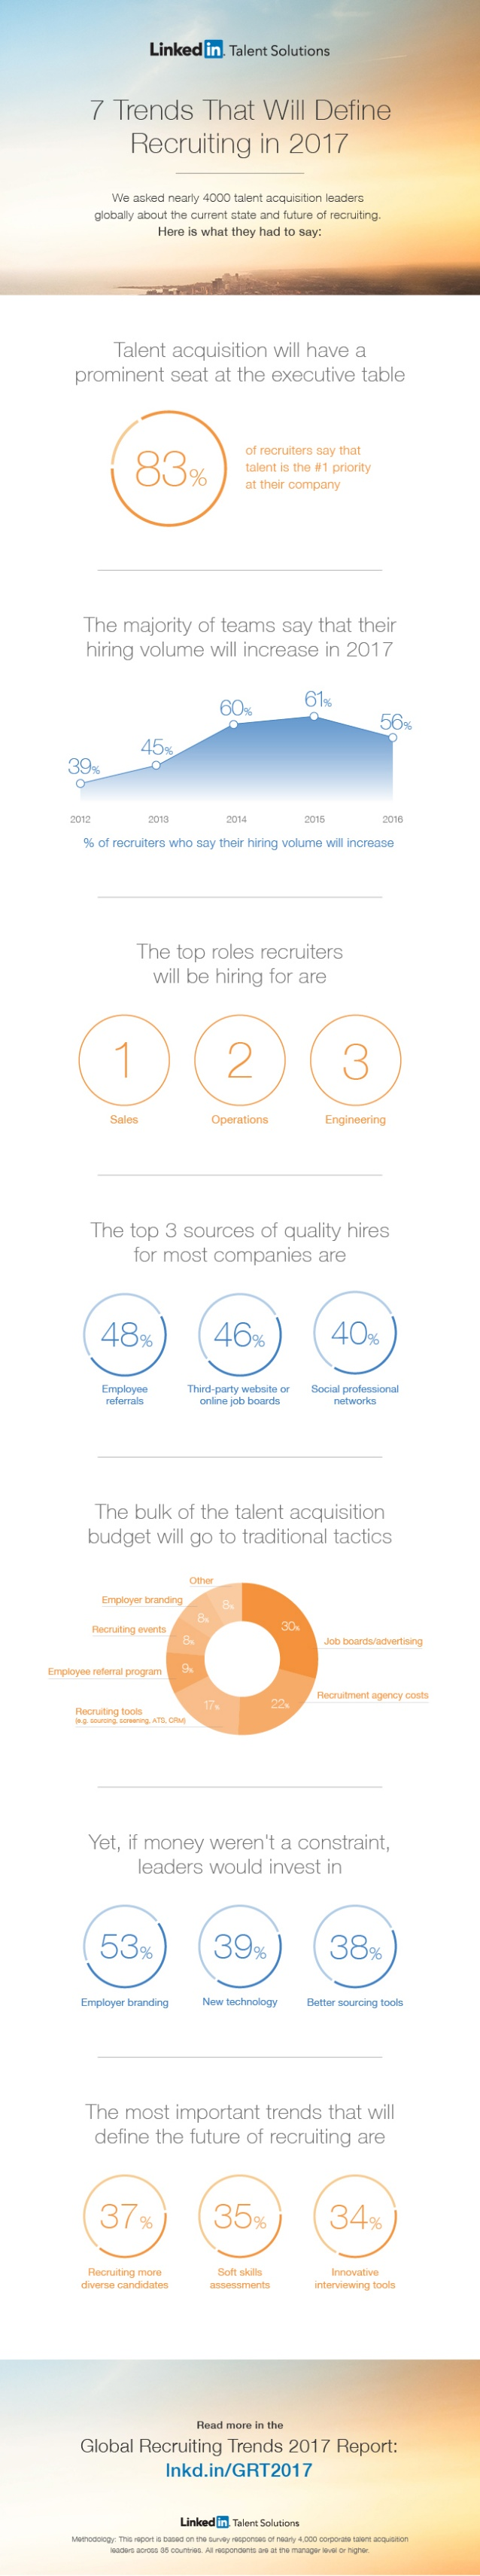 global-recruiting-trends-2017-infographic-1-638